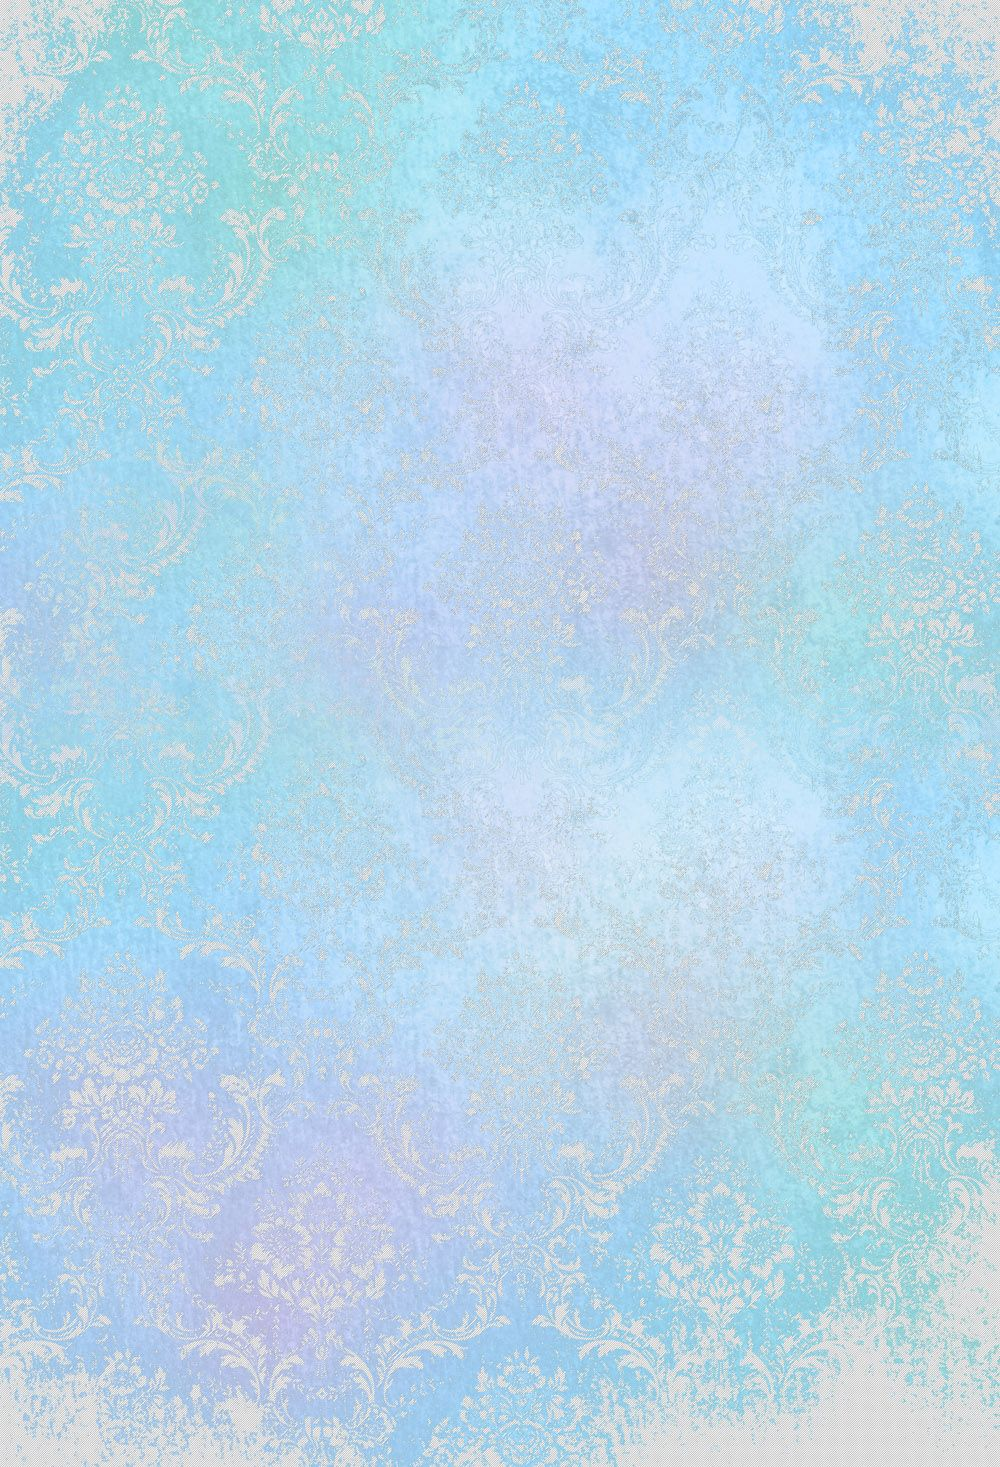 Blue Damask Wall Photography Backgrounds Studio Props Baby Birthday Customize Photo Booth Banner Backdrop XT-6773